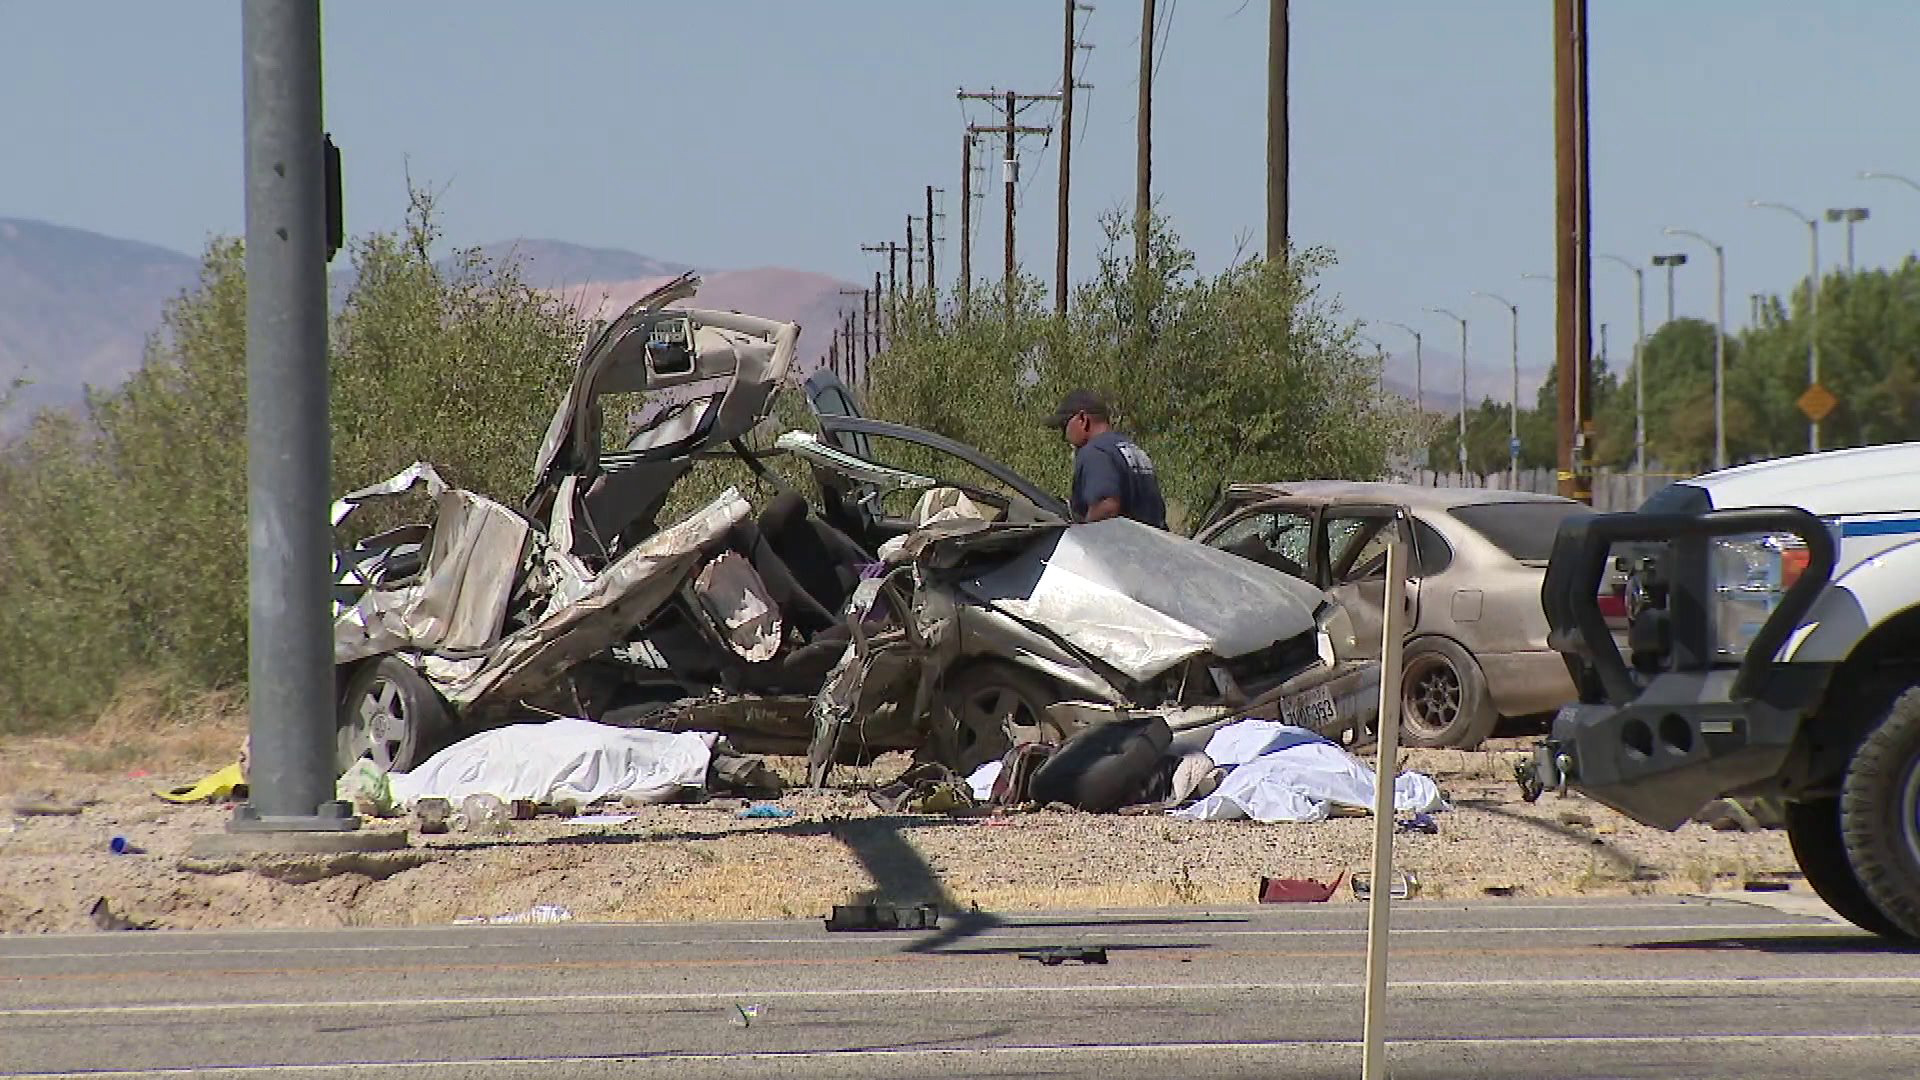 Four people and two dogs died after a violent two-car wreck in Lancaster on Aug. 14, 2019. (Credit: KTLA)